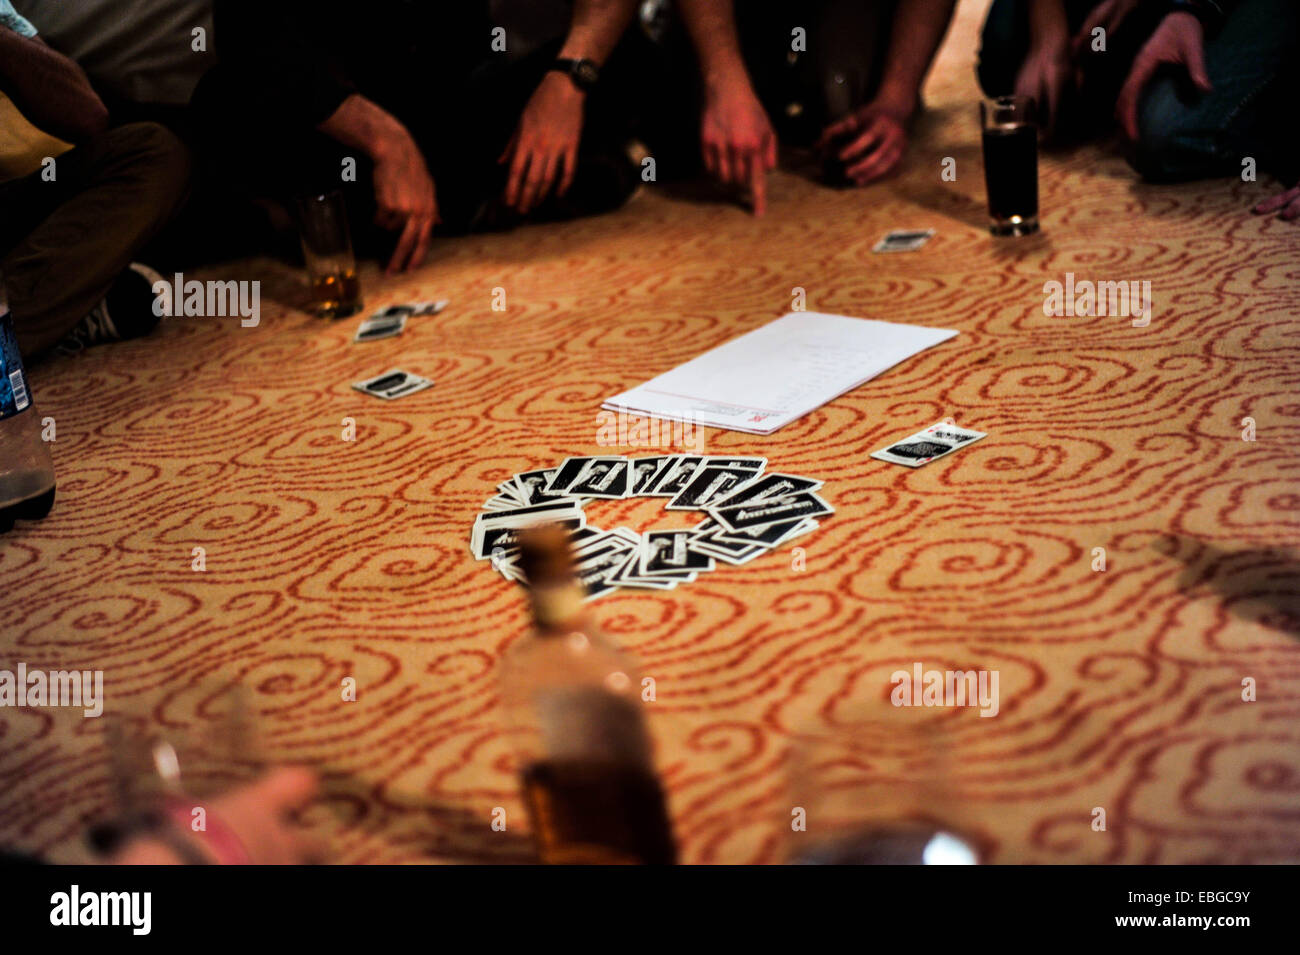 Game of Ring of Fire on the floor in a room - Stock Image